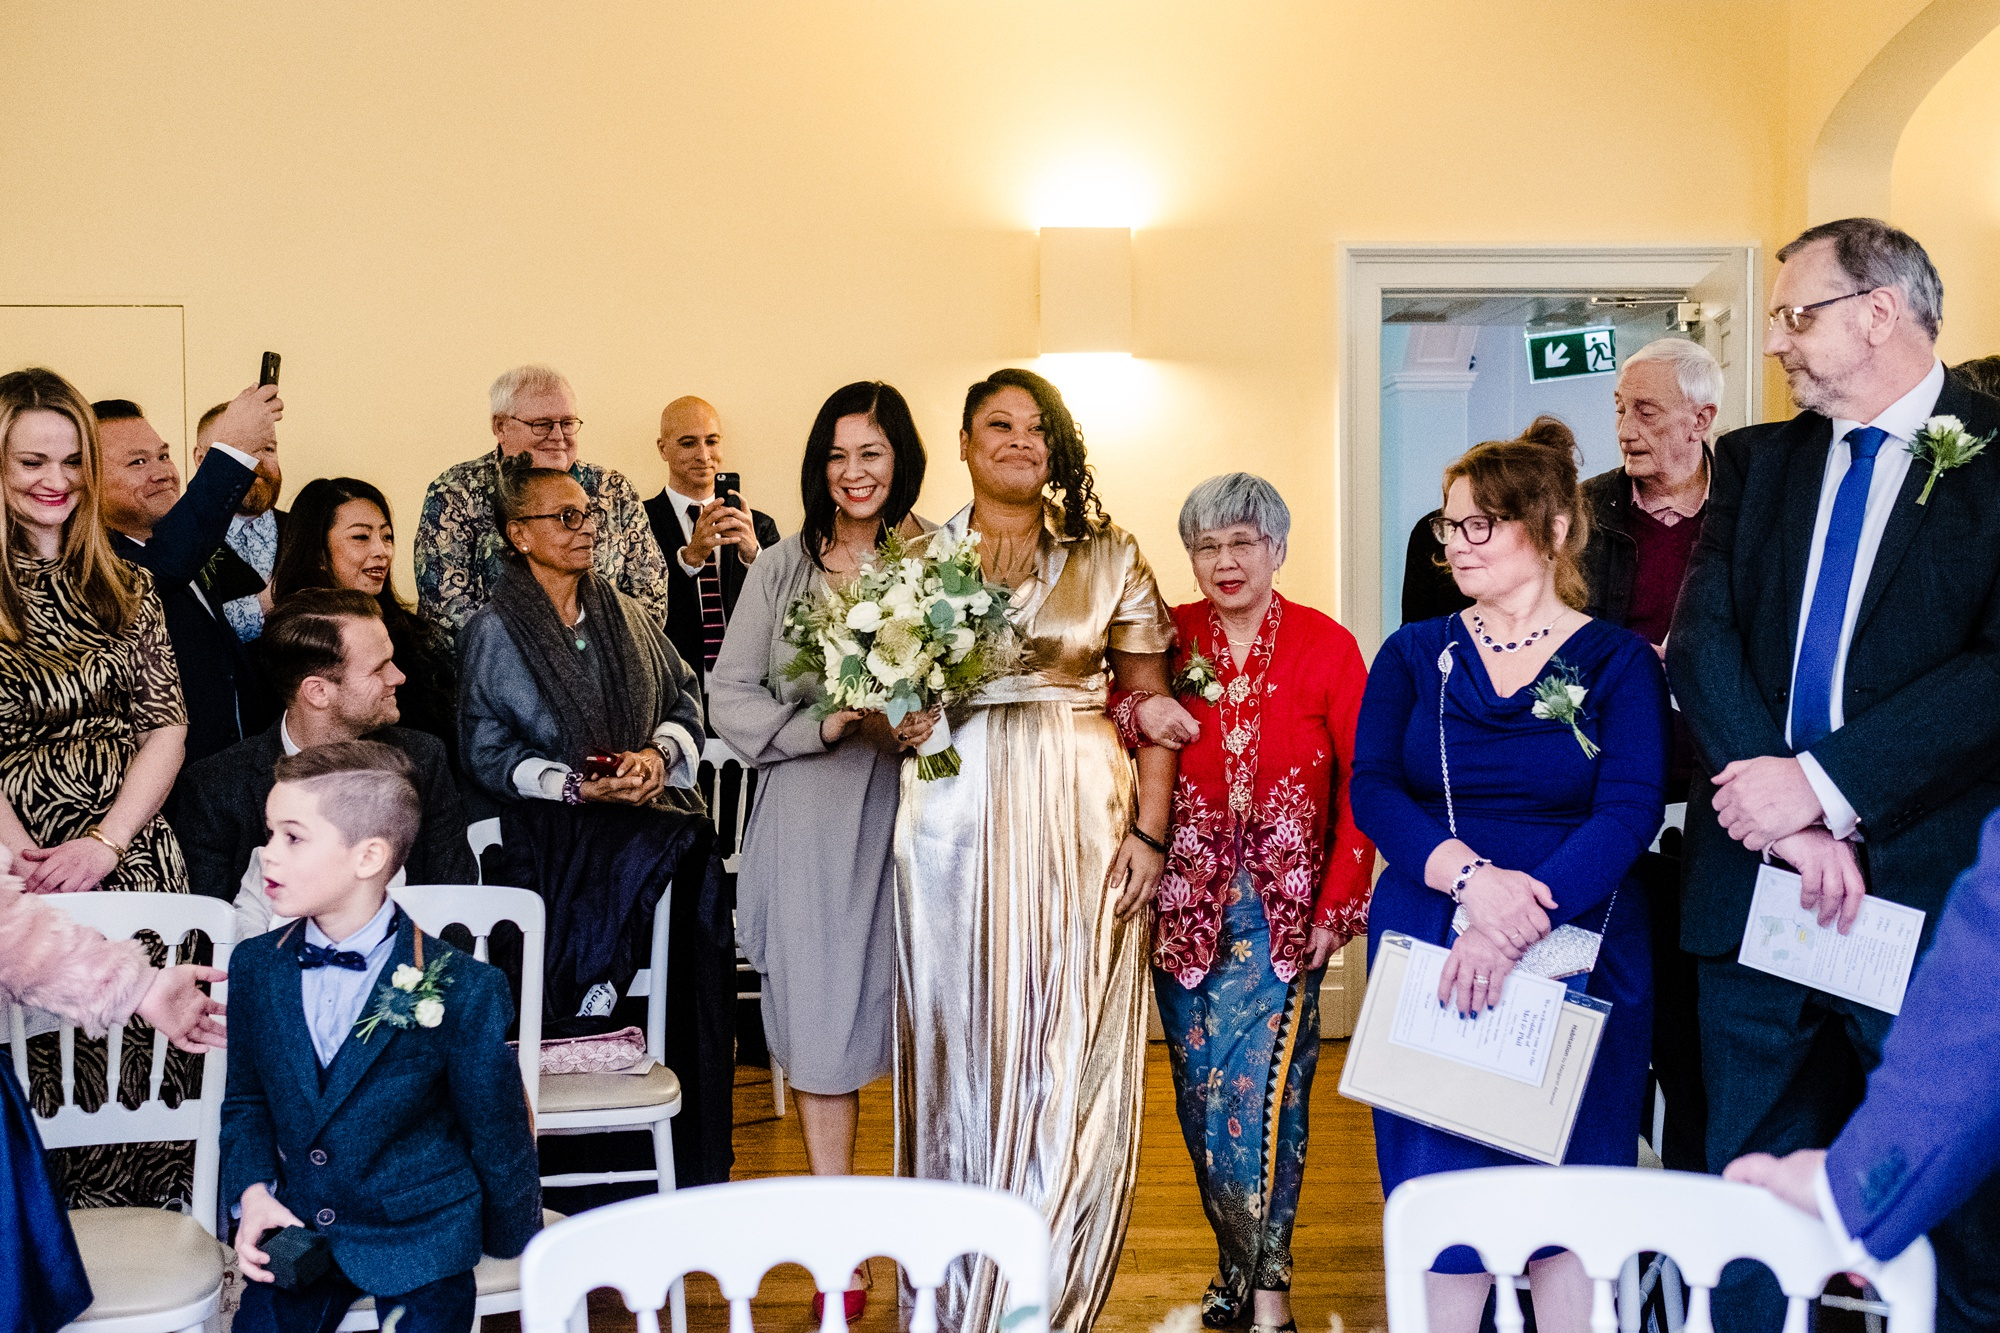 Clissold-House-Wedding-Photographer_0018.jpg